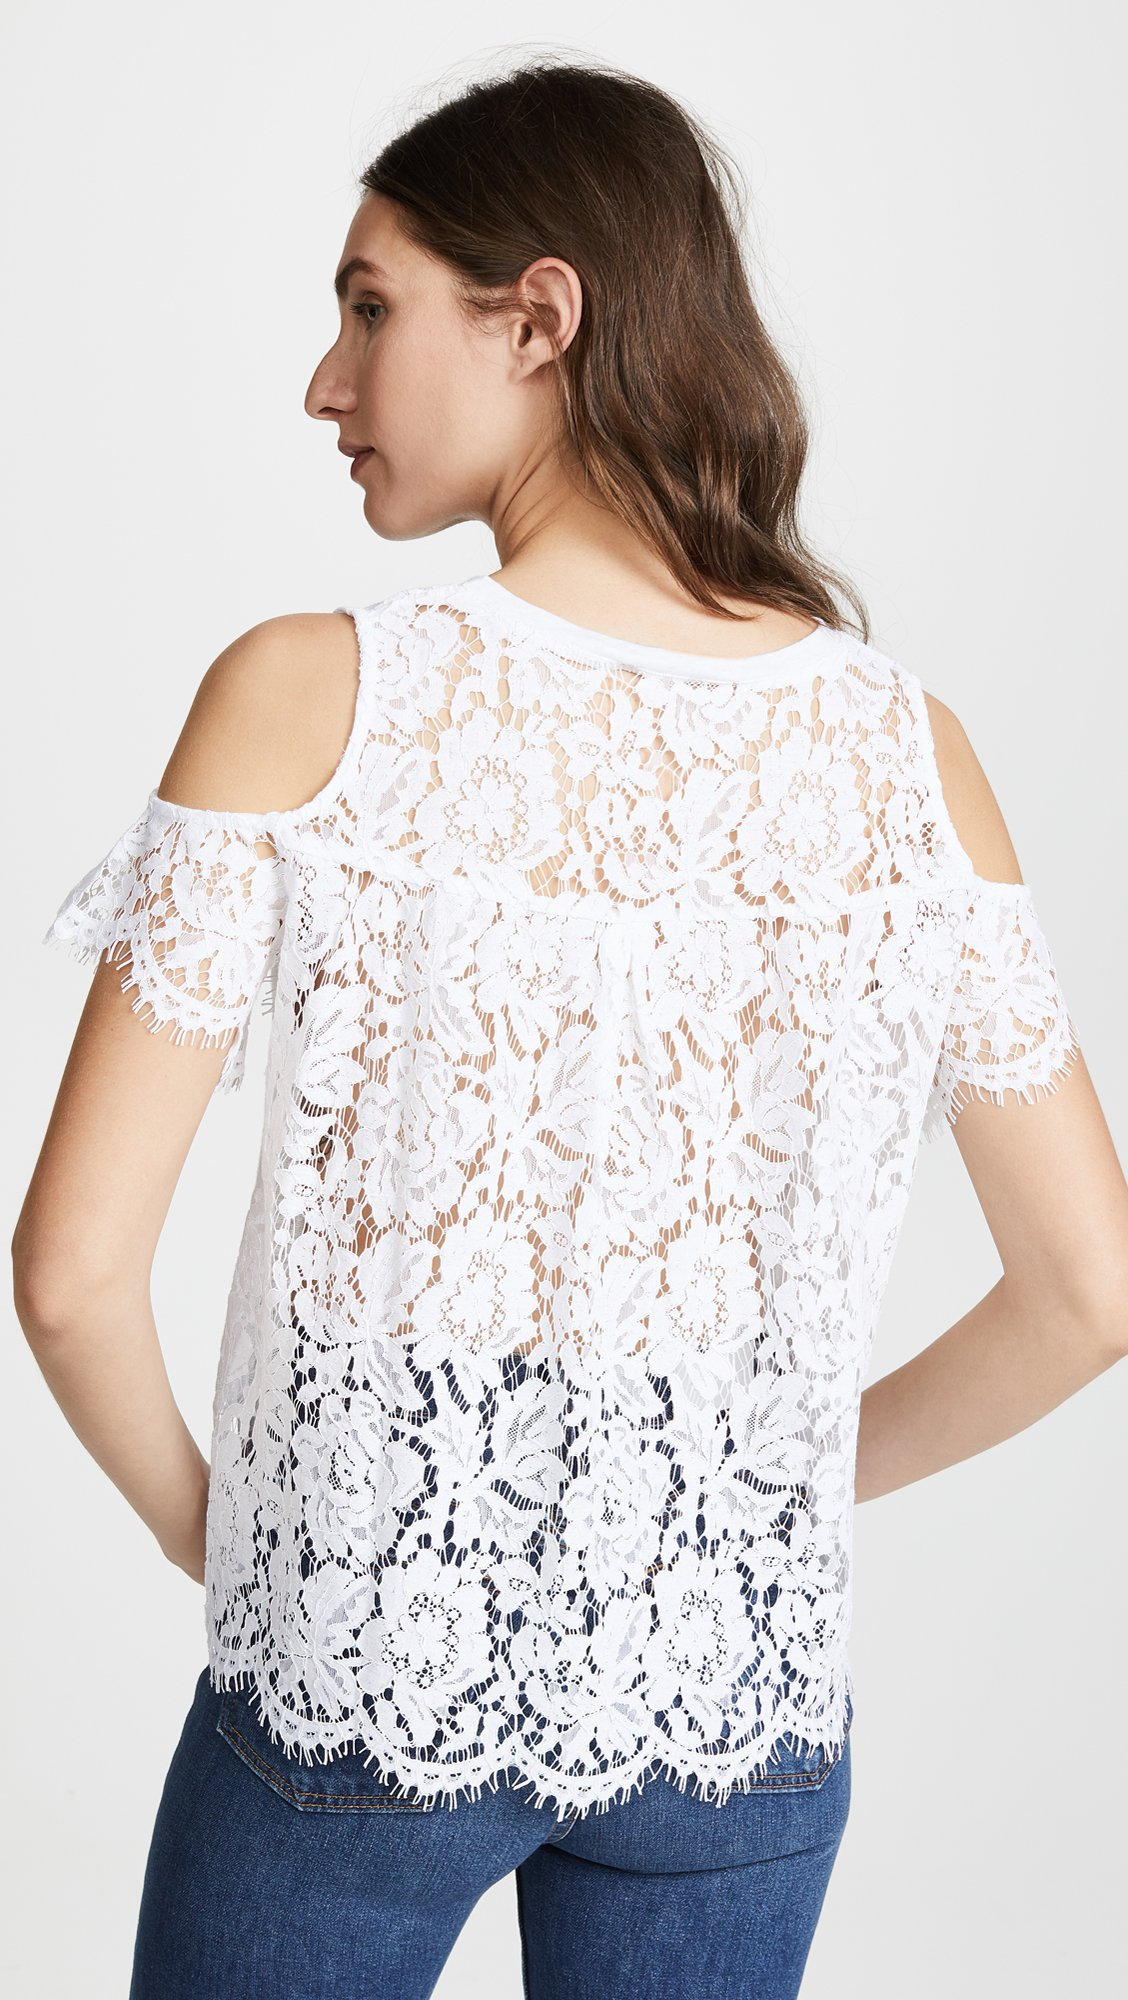 Generation Love Women's London Lace Cold Shoulder Tee, White, Small by Generation Love (Image #3)